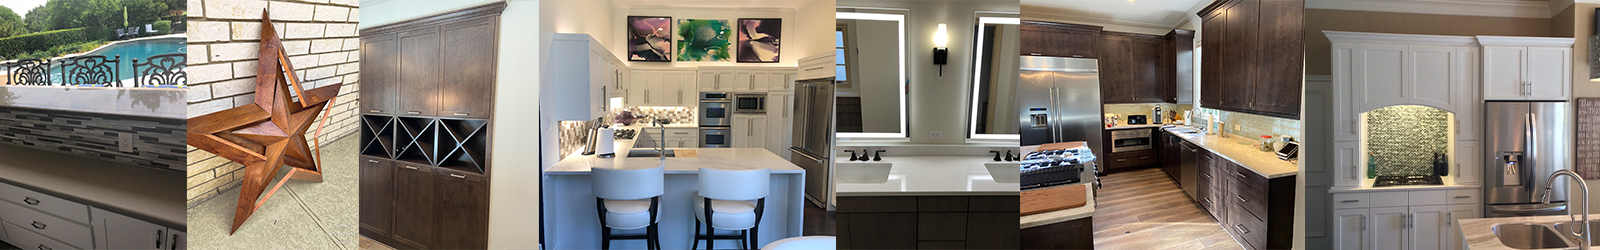 Remodeling Services DFW